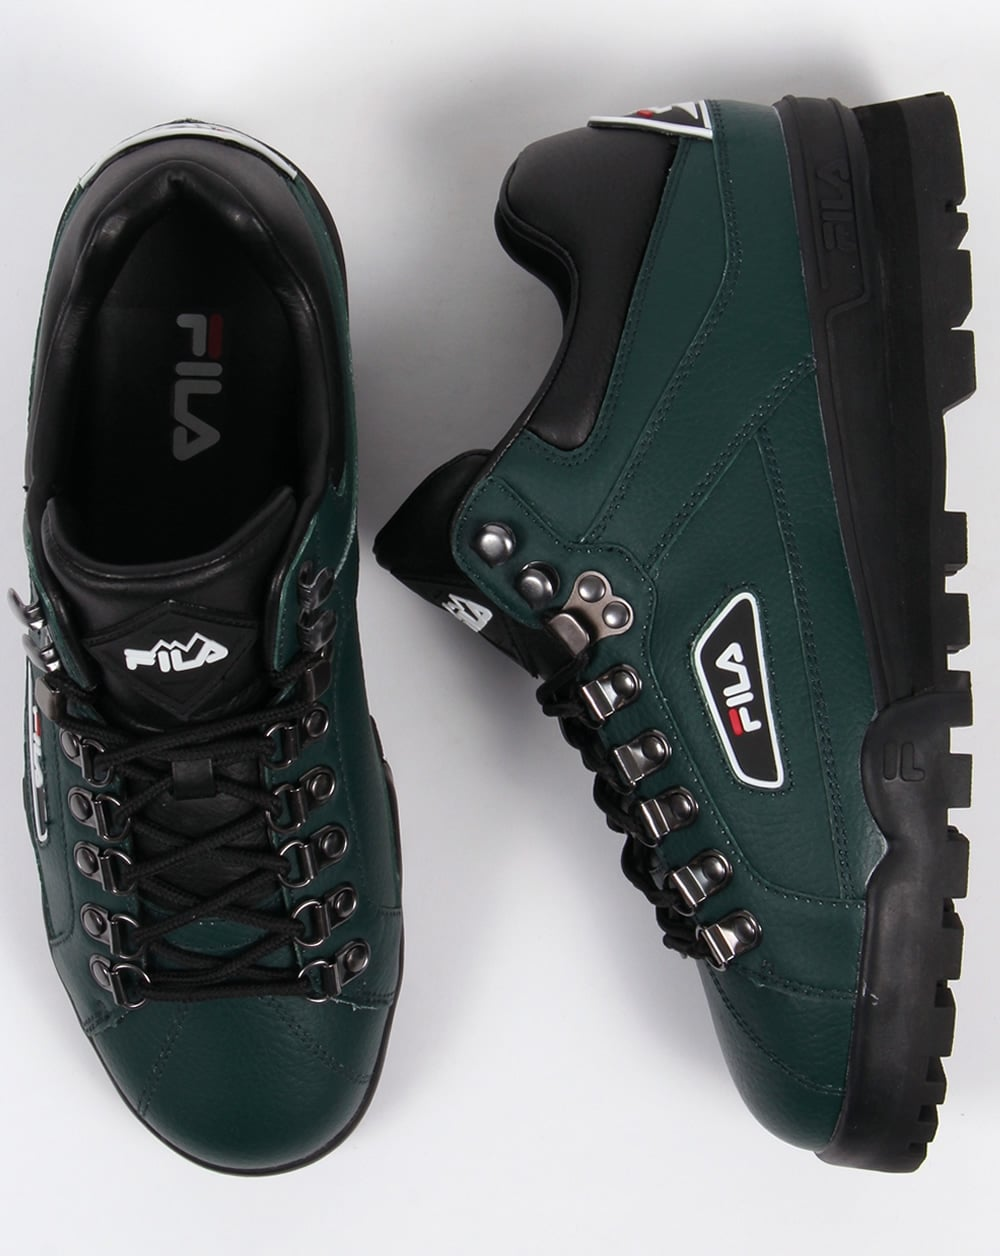 Fila Trailblazer Boots Green,leather,hiking,mens